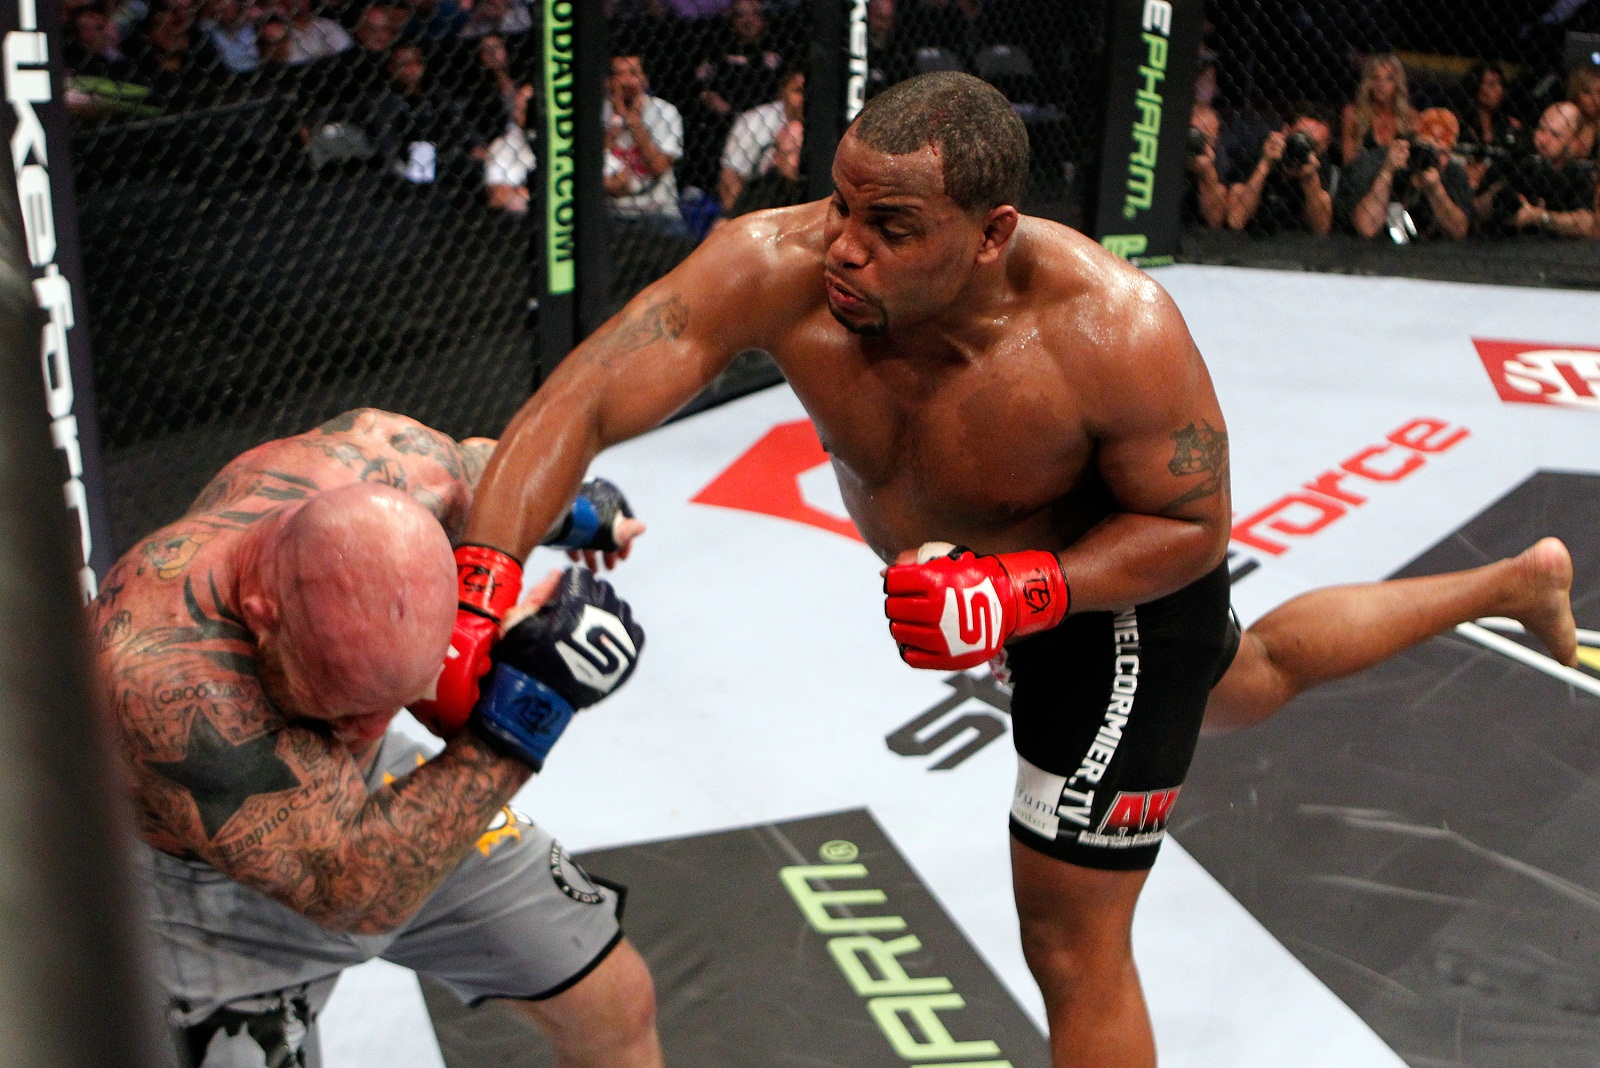 Strikeforce heavyweight Daniel Cormier